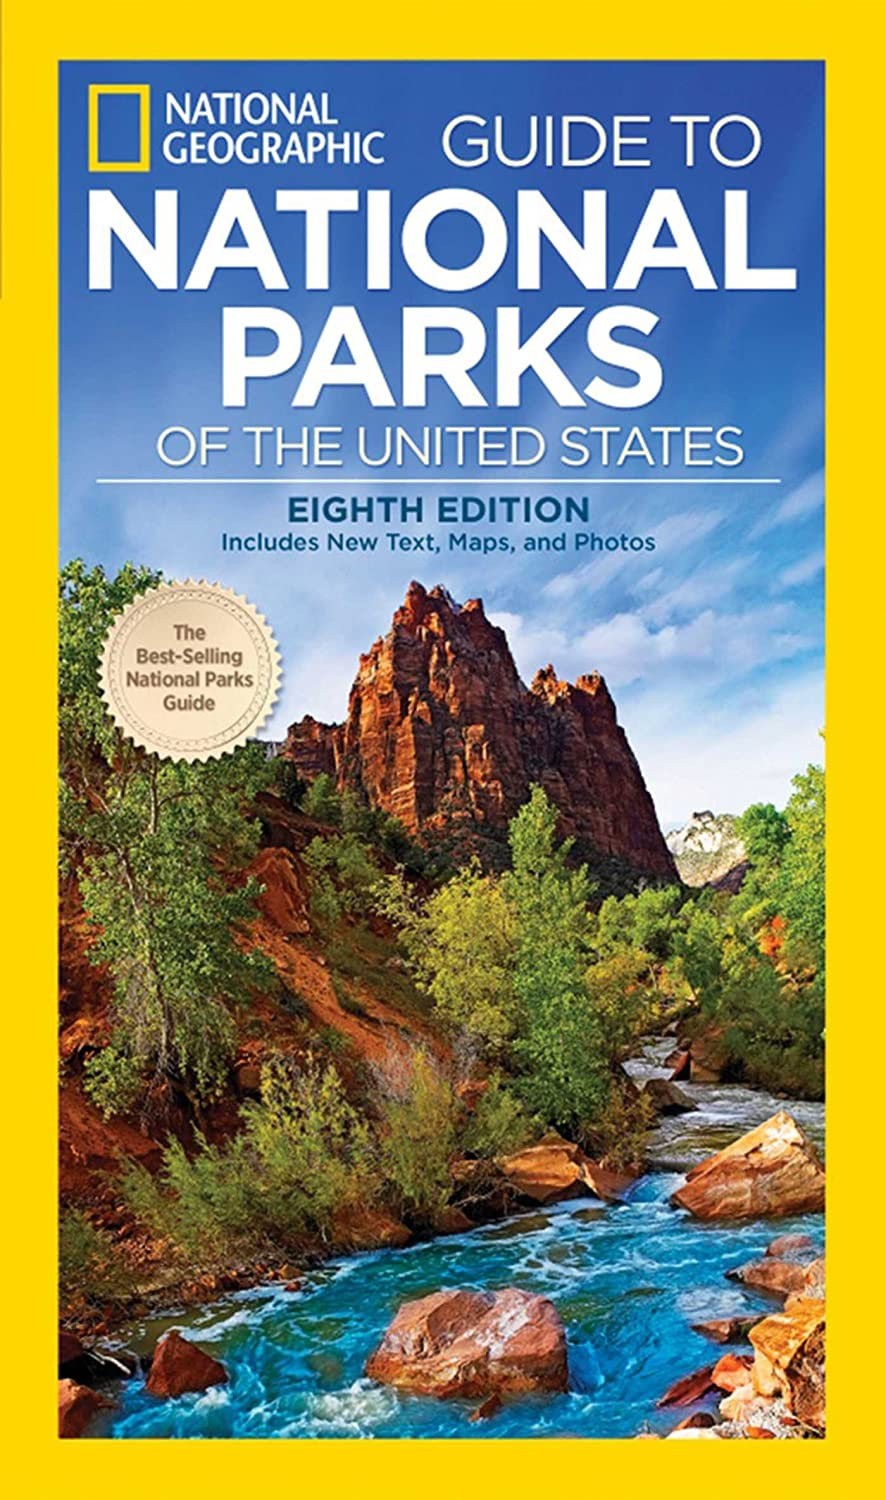 amazon com national geographic guide to national parks of the